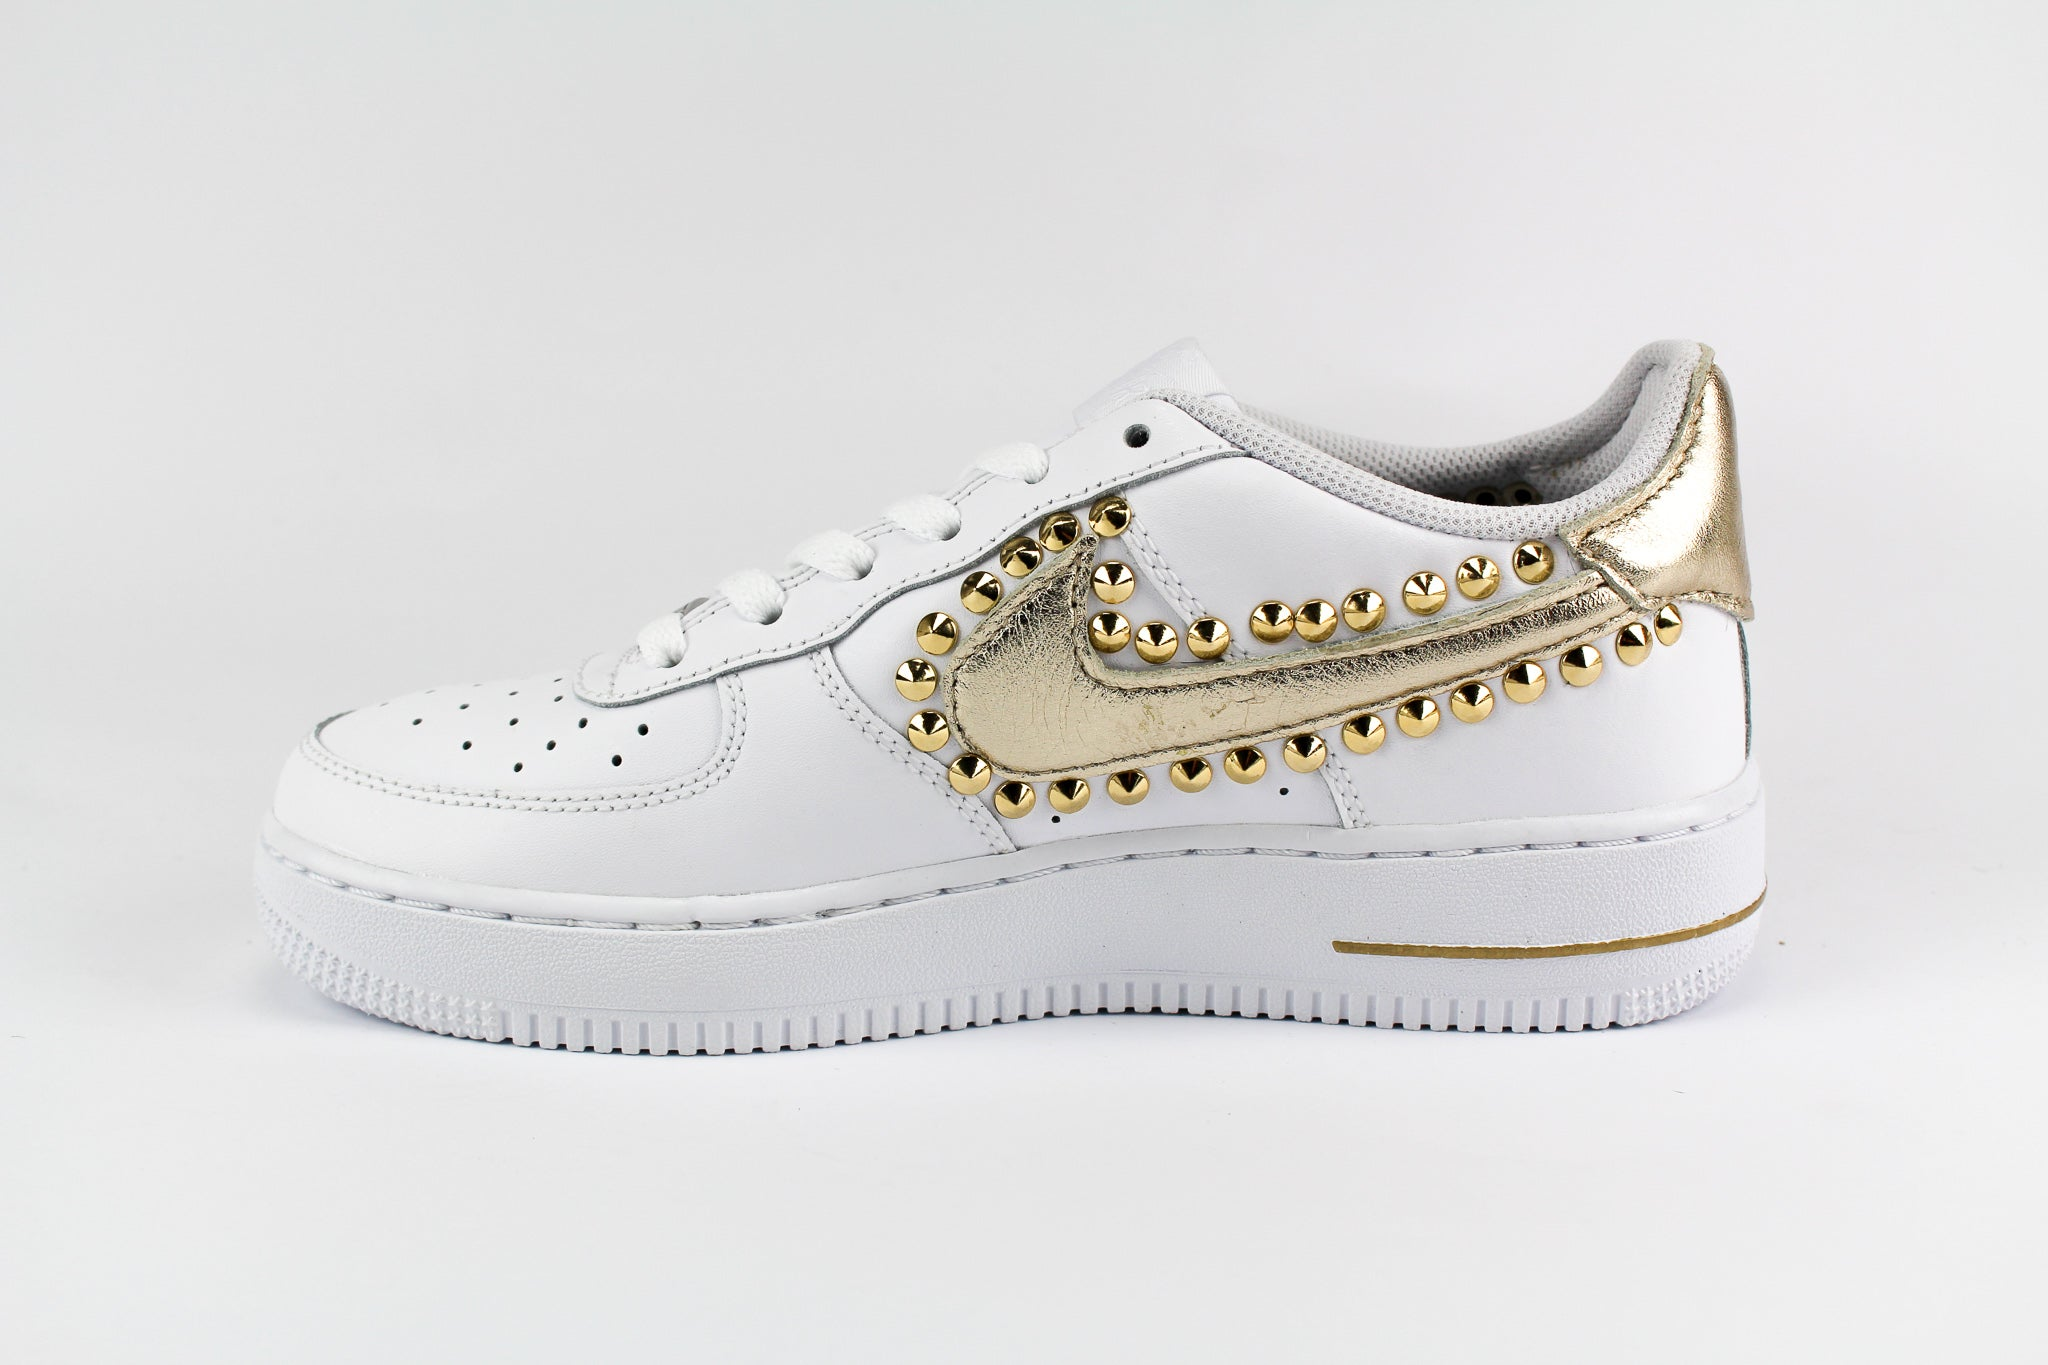 Nike Air Force 1 '07 Personalizzate Gold Metal & Borchie